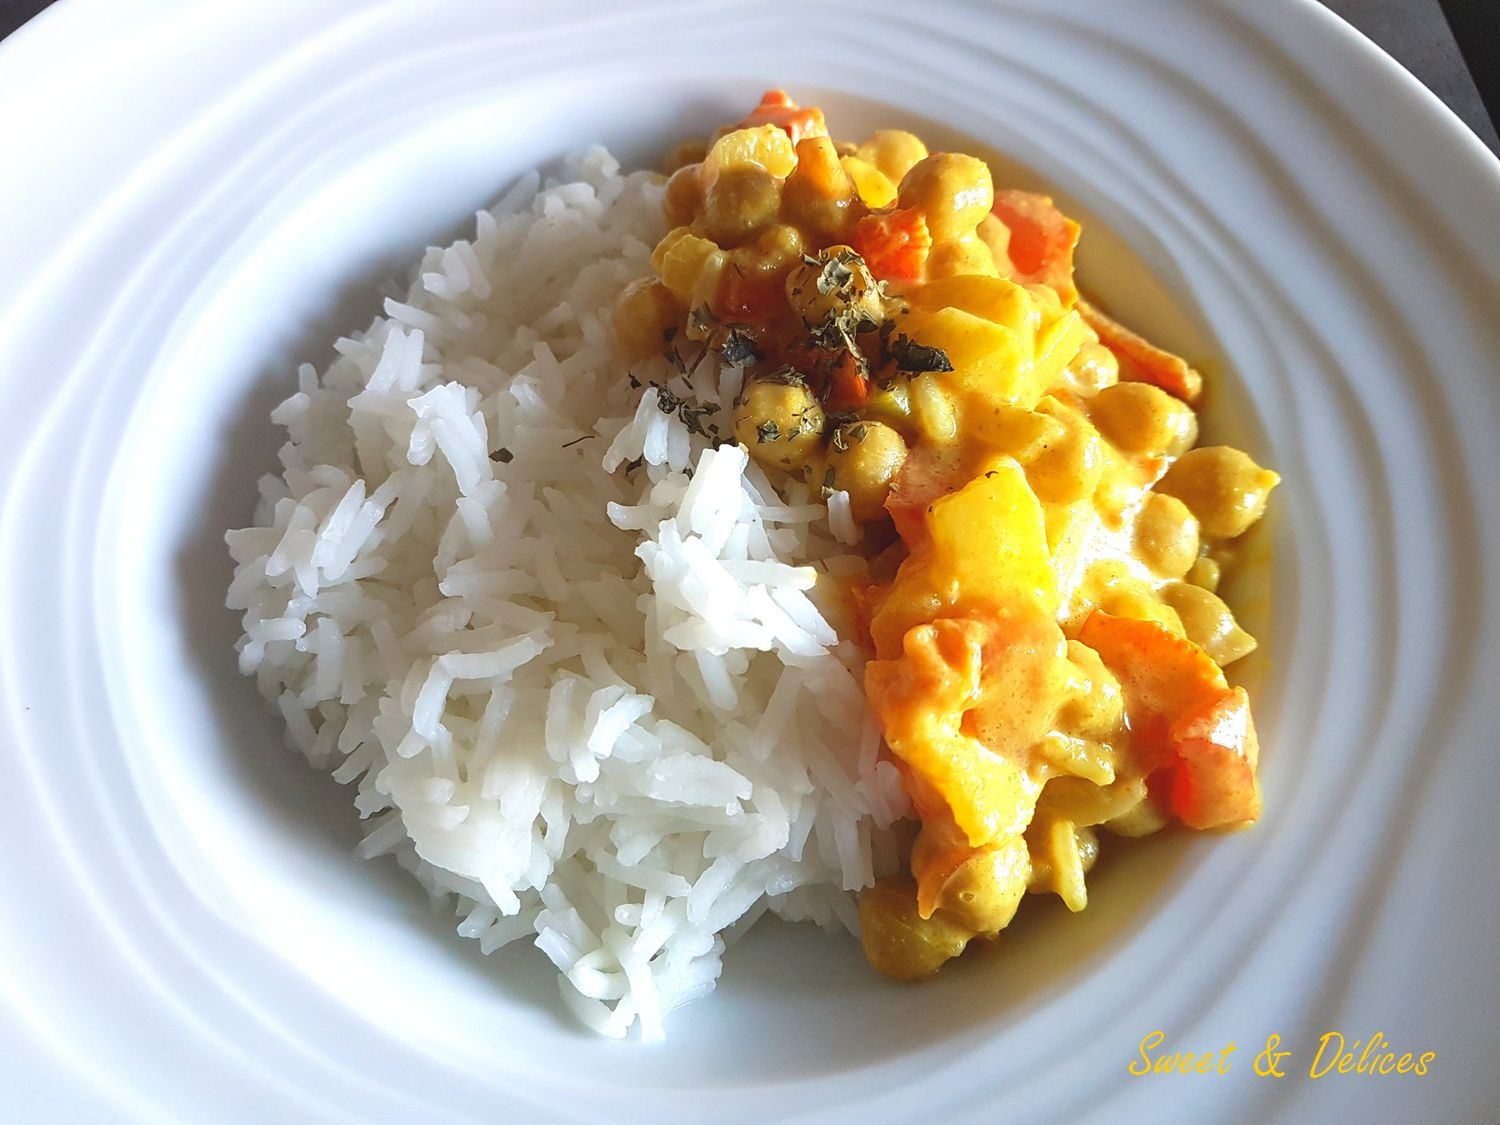 Curry de l gumes aux pois chiches recette sal e sweet - Thermomix ne pese plus ...